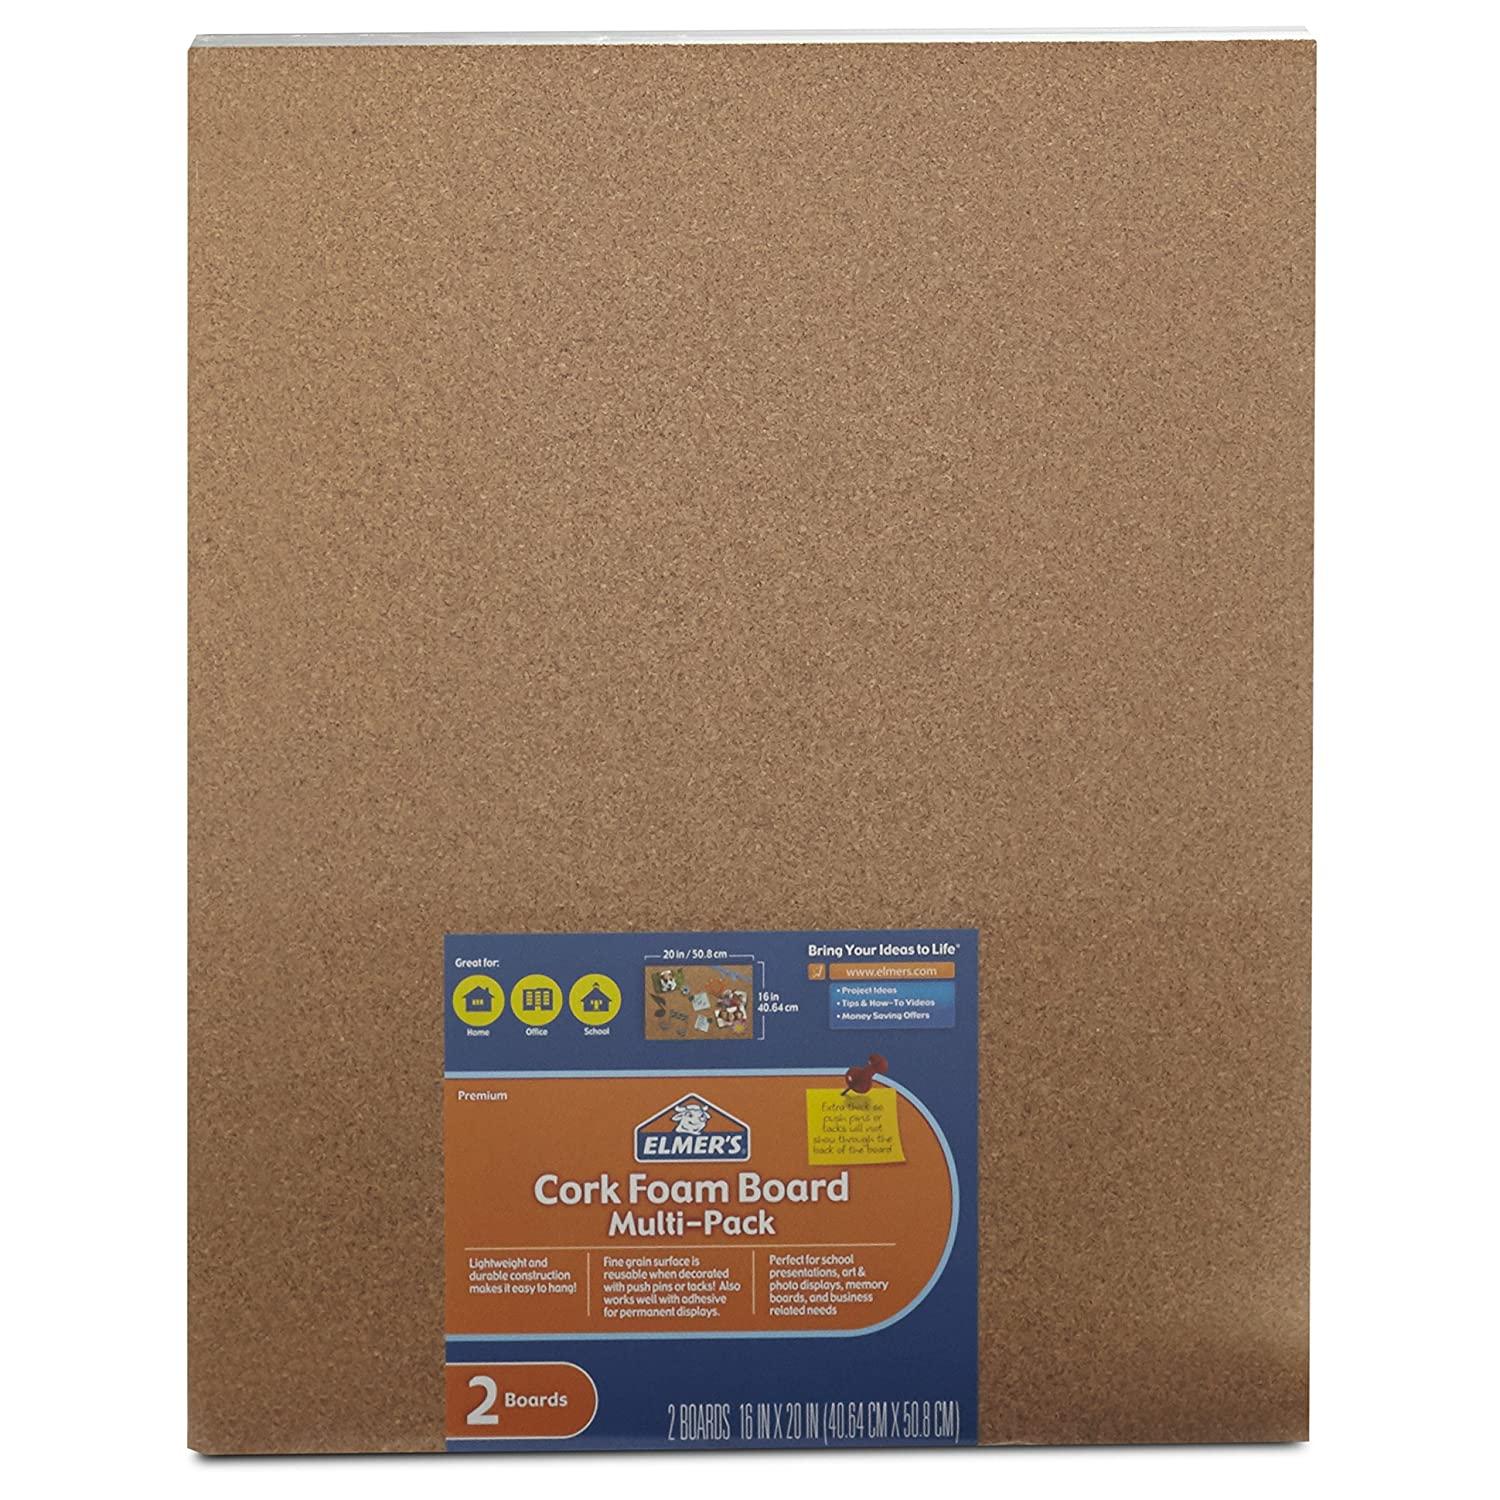 Elmer's Cork Foam Boards, 16 x 20 Inches, 3/8-Inch Thick, 2-Count (950086) Elmer's Cork Foam Boards Elmers